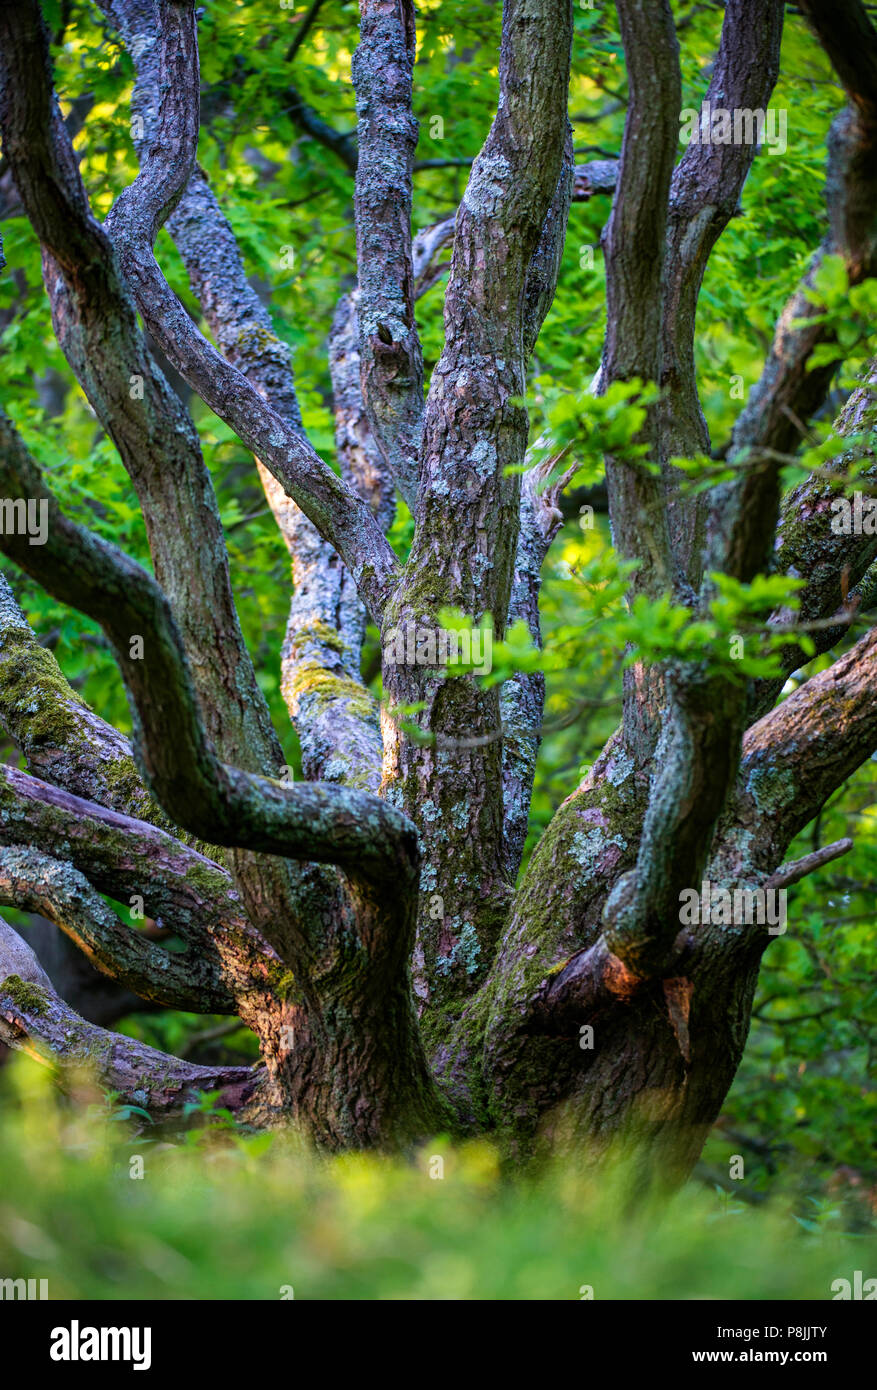 Ancient oak woodland during spring - Stock Image